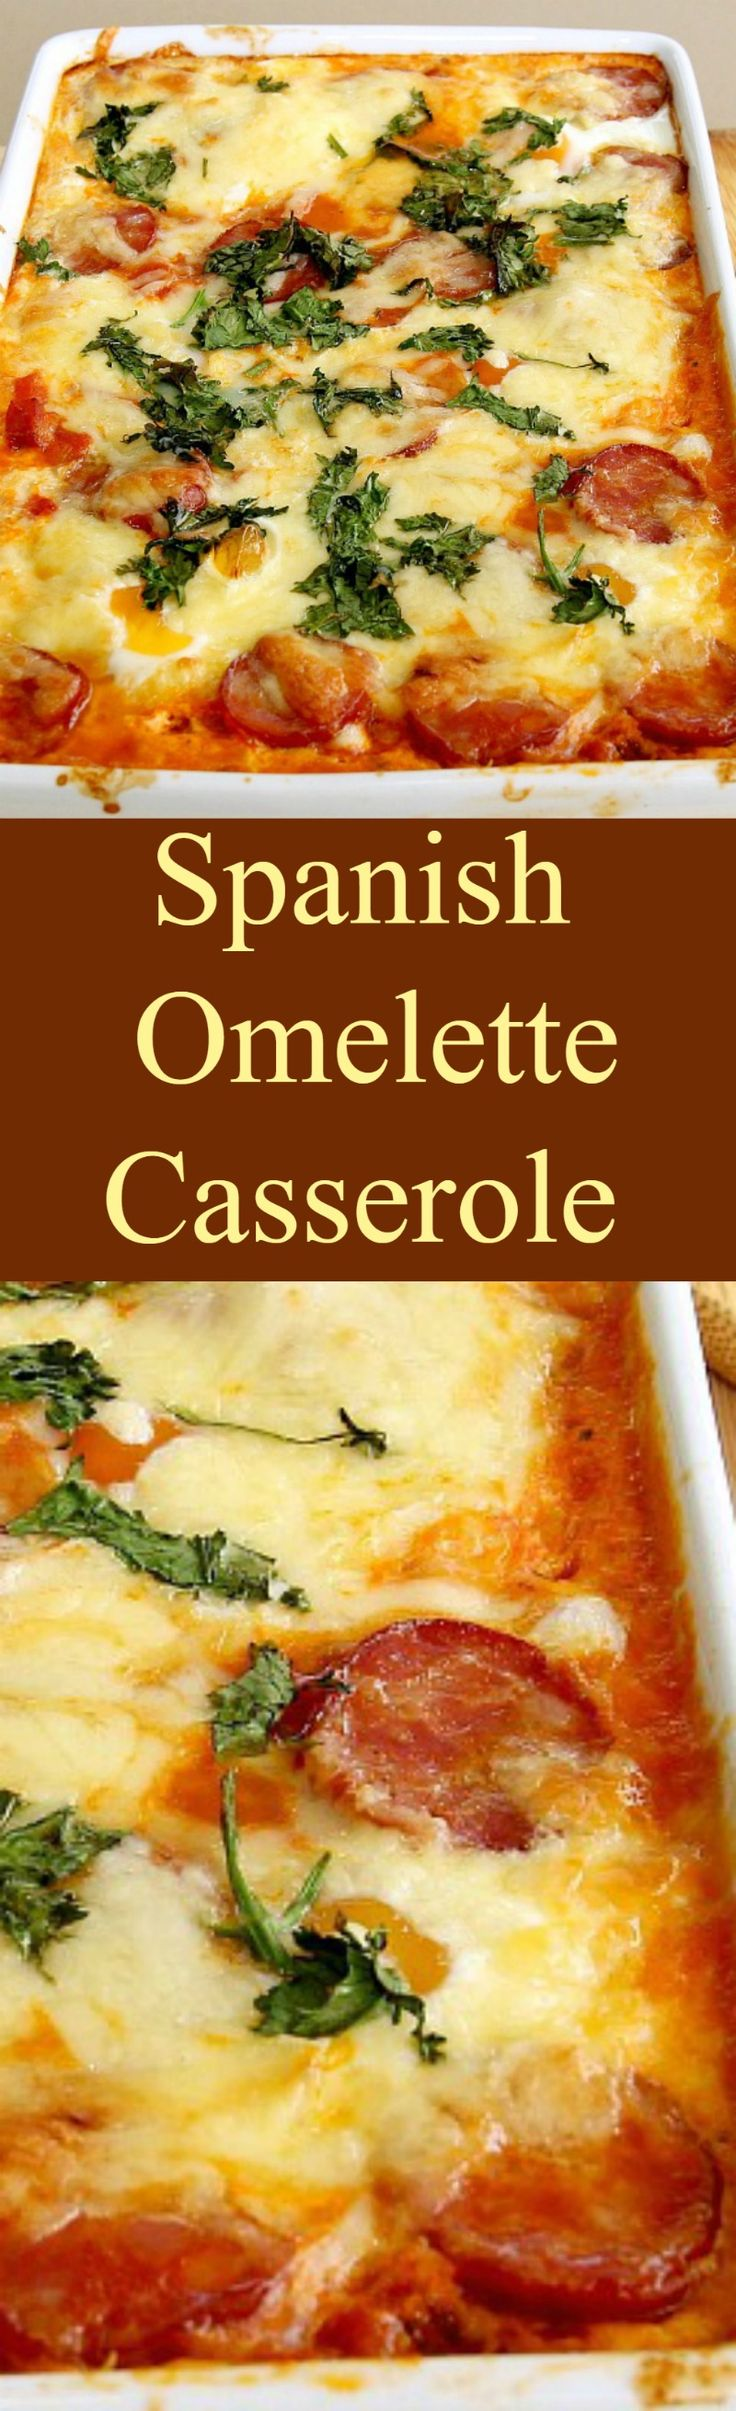 about Spanish Omelette on Pinterest | Spanish potato omelet, Spanish ...